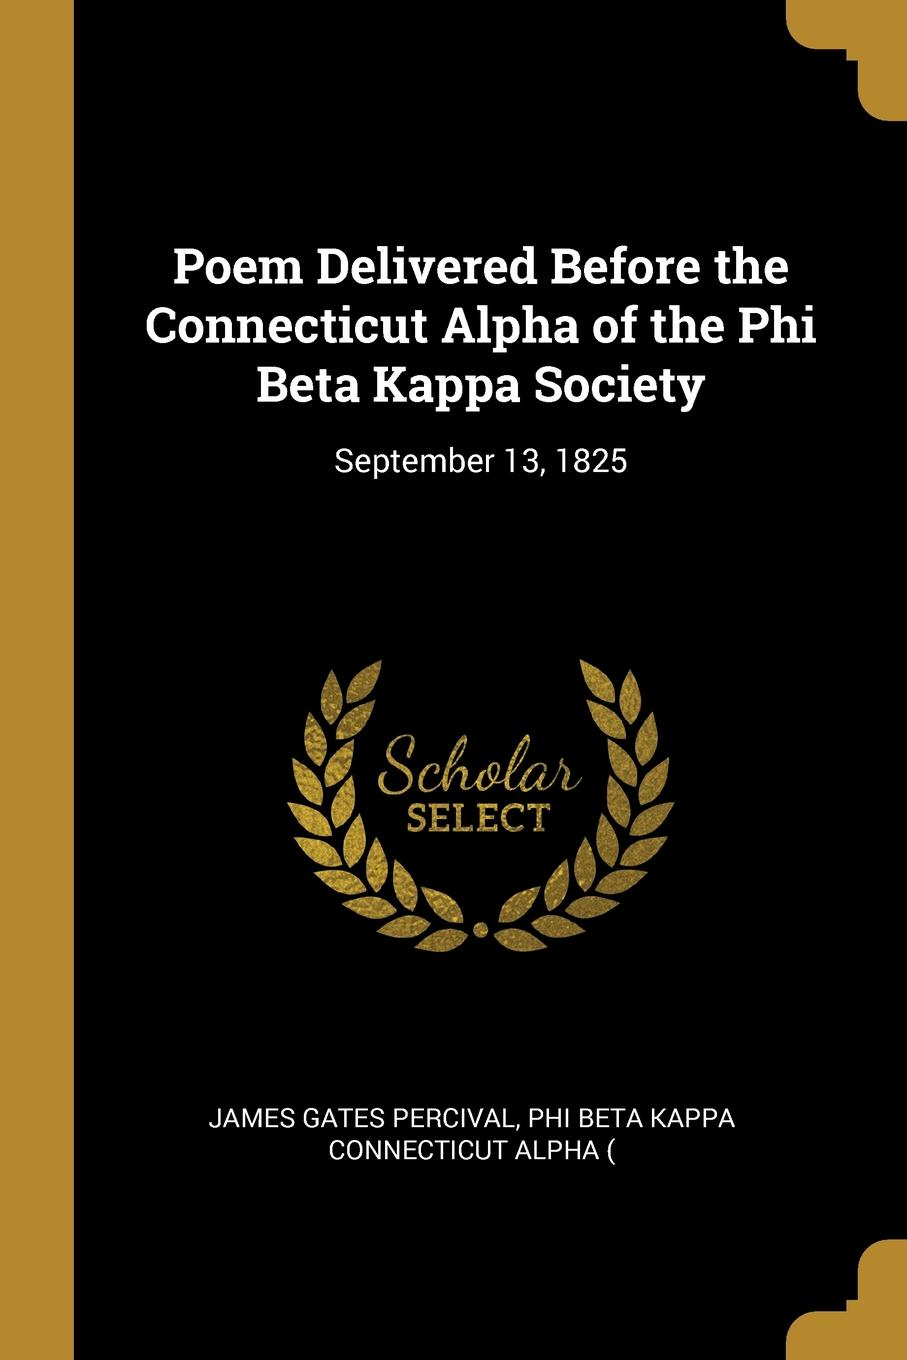 Phi Beta Kappa Connectic Gates Percival Poem Delivered Before the Connecticut Alpha of the Phi Beta Kappa Society. September 13, 1825 james gates percival poem delivered before the connecticut alpha of the phi beta kappa society september 13 1825